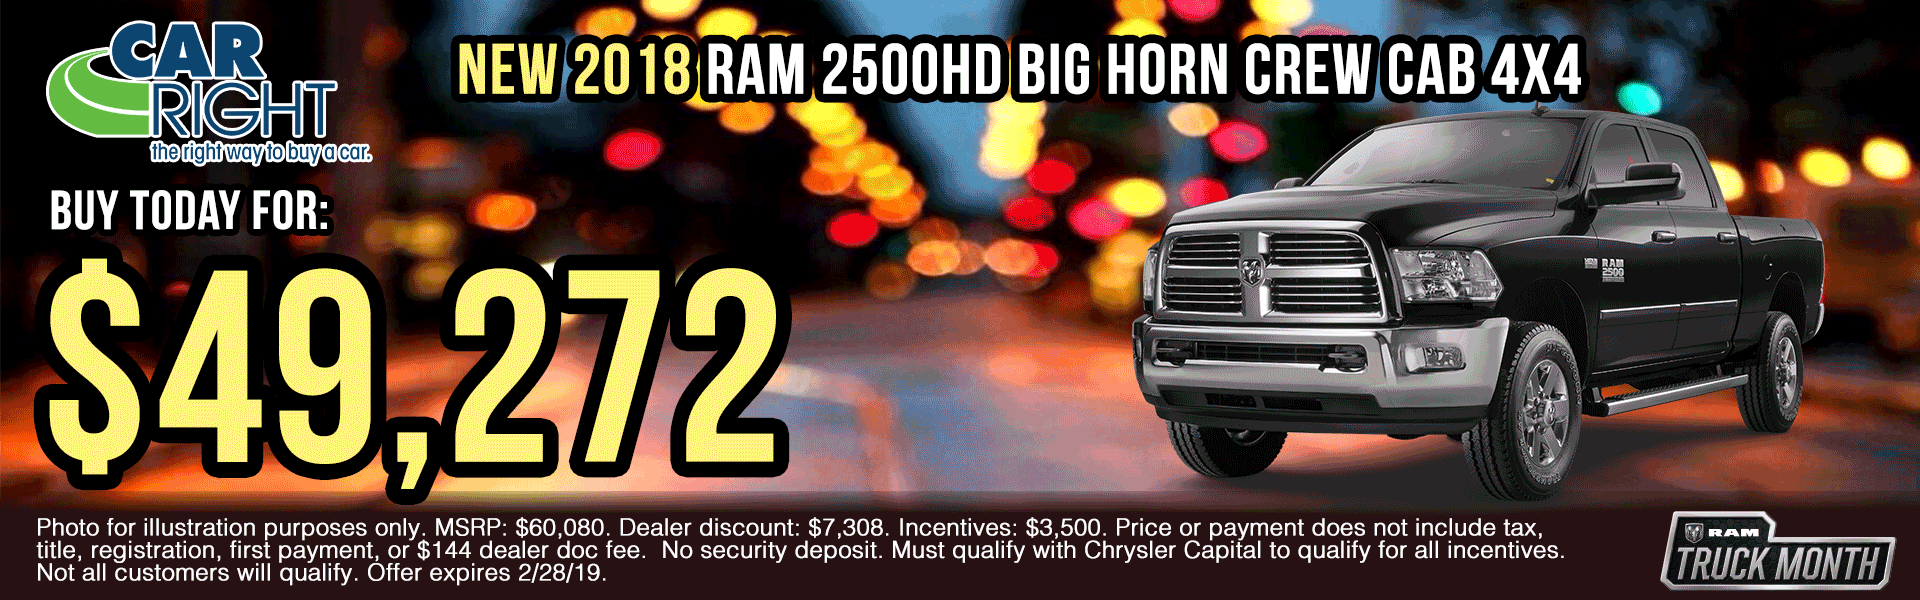 B2750-2018-ram-2500-big-horn-crew-cab-4x4 presidents day sales event Ram truck month new vehicle specials ram specials carright specials carright Chrysler dodge jeep ram moon township Chrysler specials jeep specials dodge specials truck specials lease specials